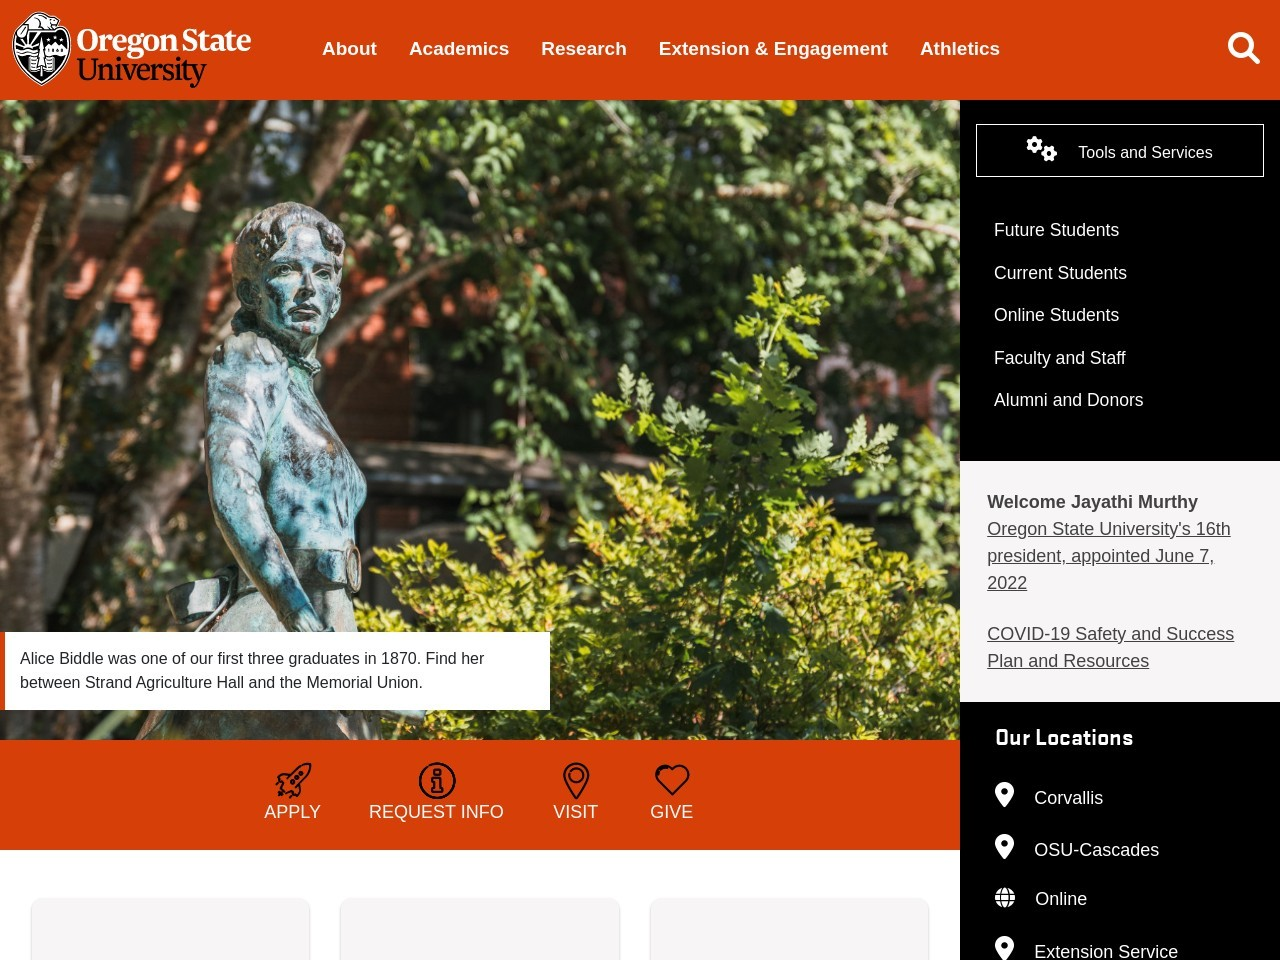 oregonstate.edu